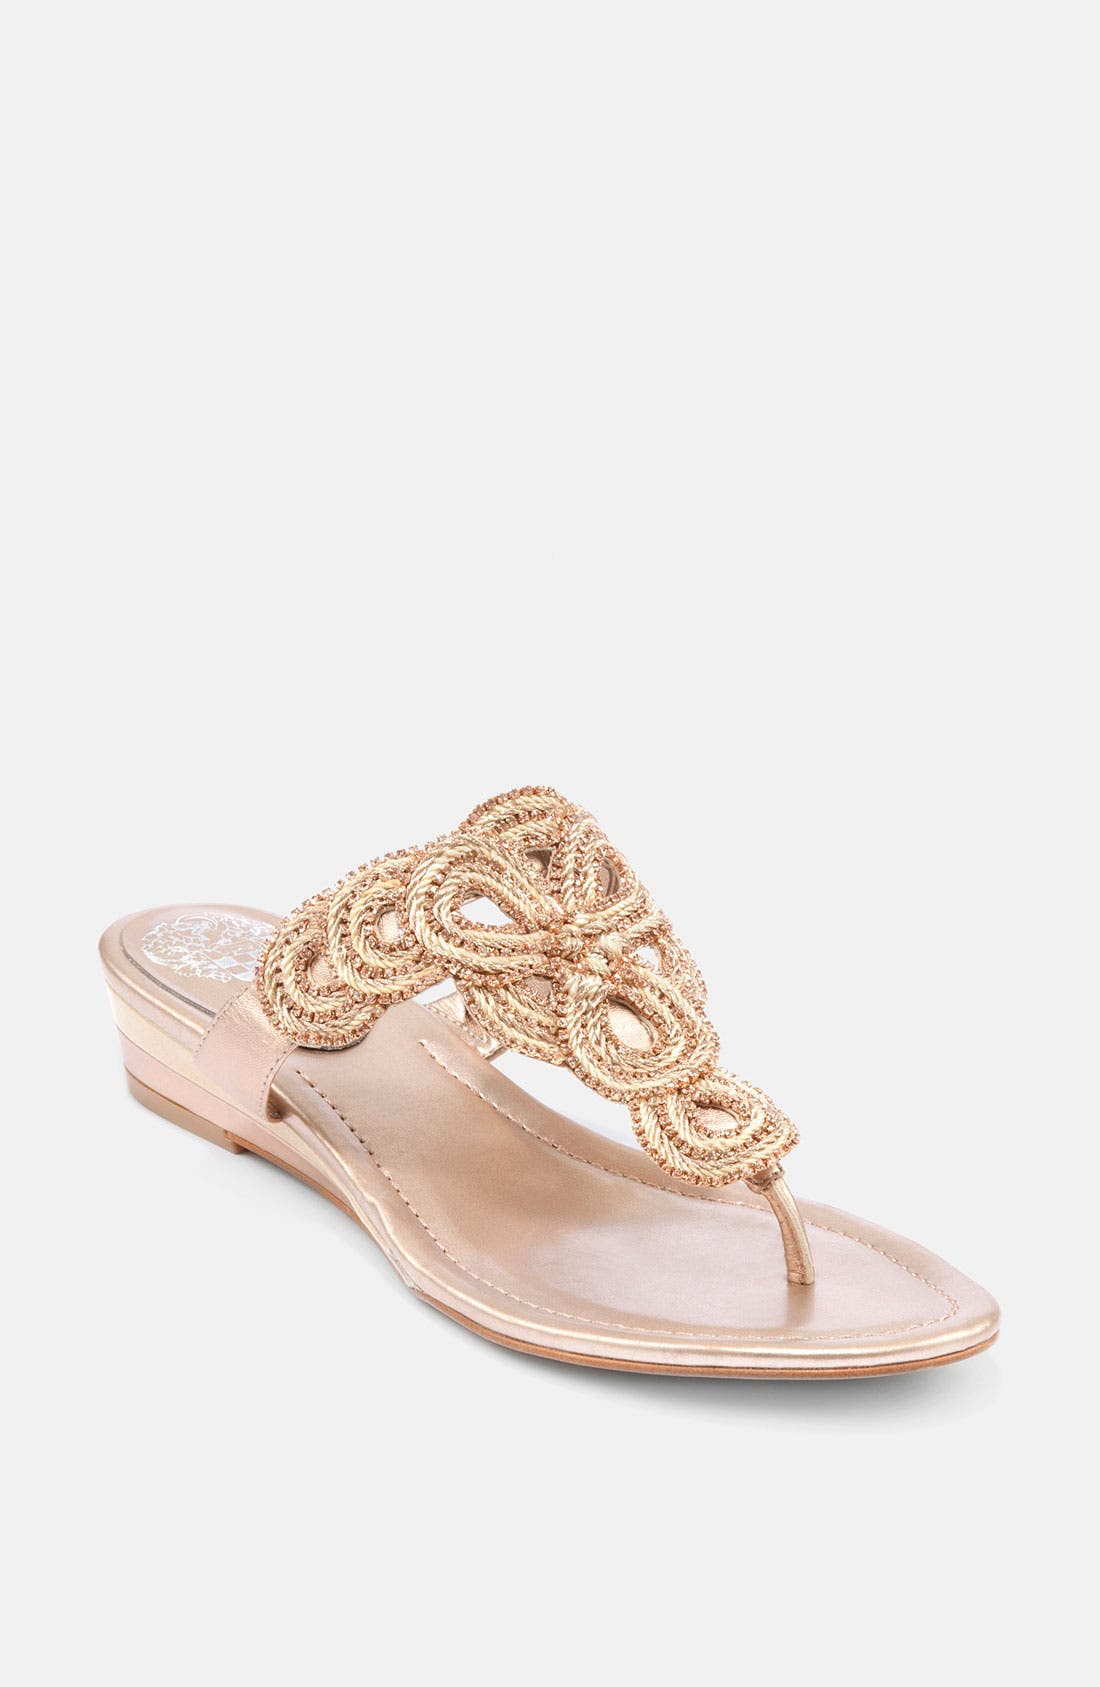 Alternate Image 1 Selected - Vince Camuto 'Idan' Sandal